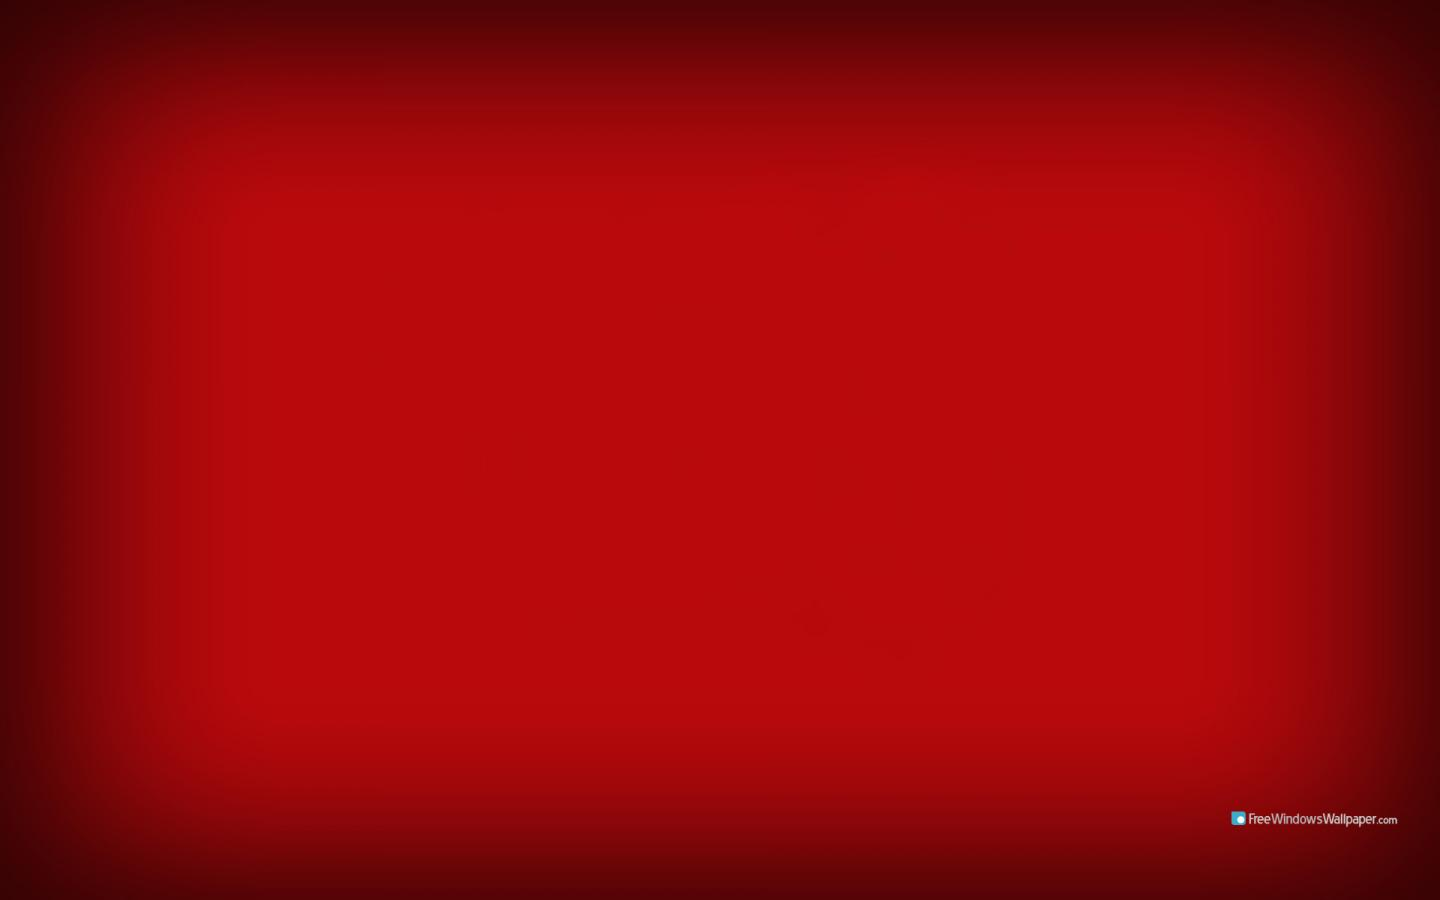 Solid Neon Red Background Solid Red Wallpaper - Dark Red Color Background - HD Wallpaper